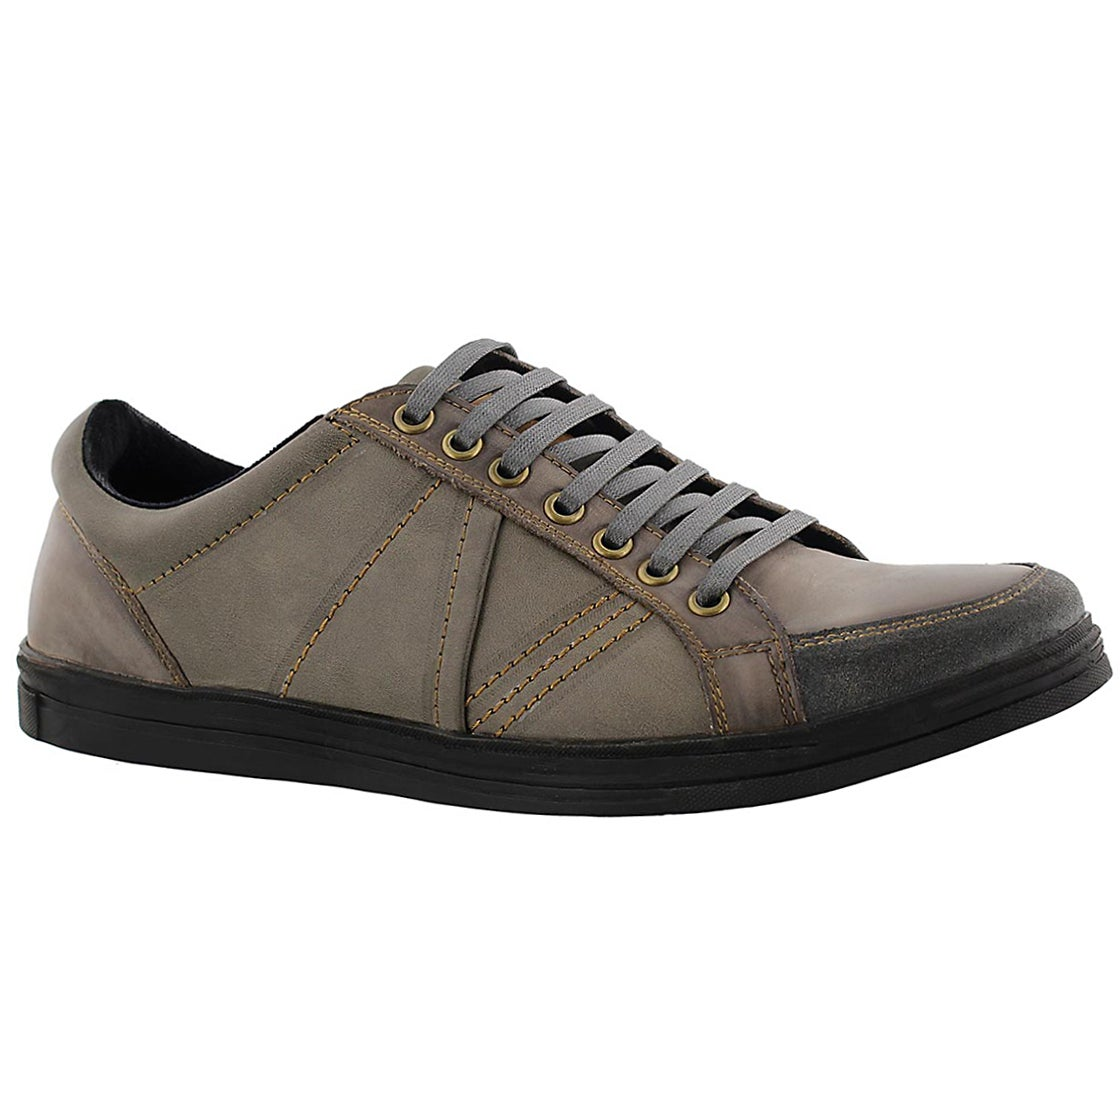 Mns Vagabond grey/ blk leather sneaker